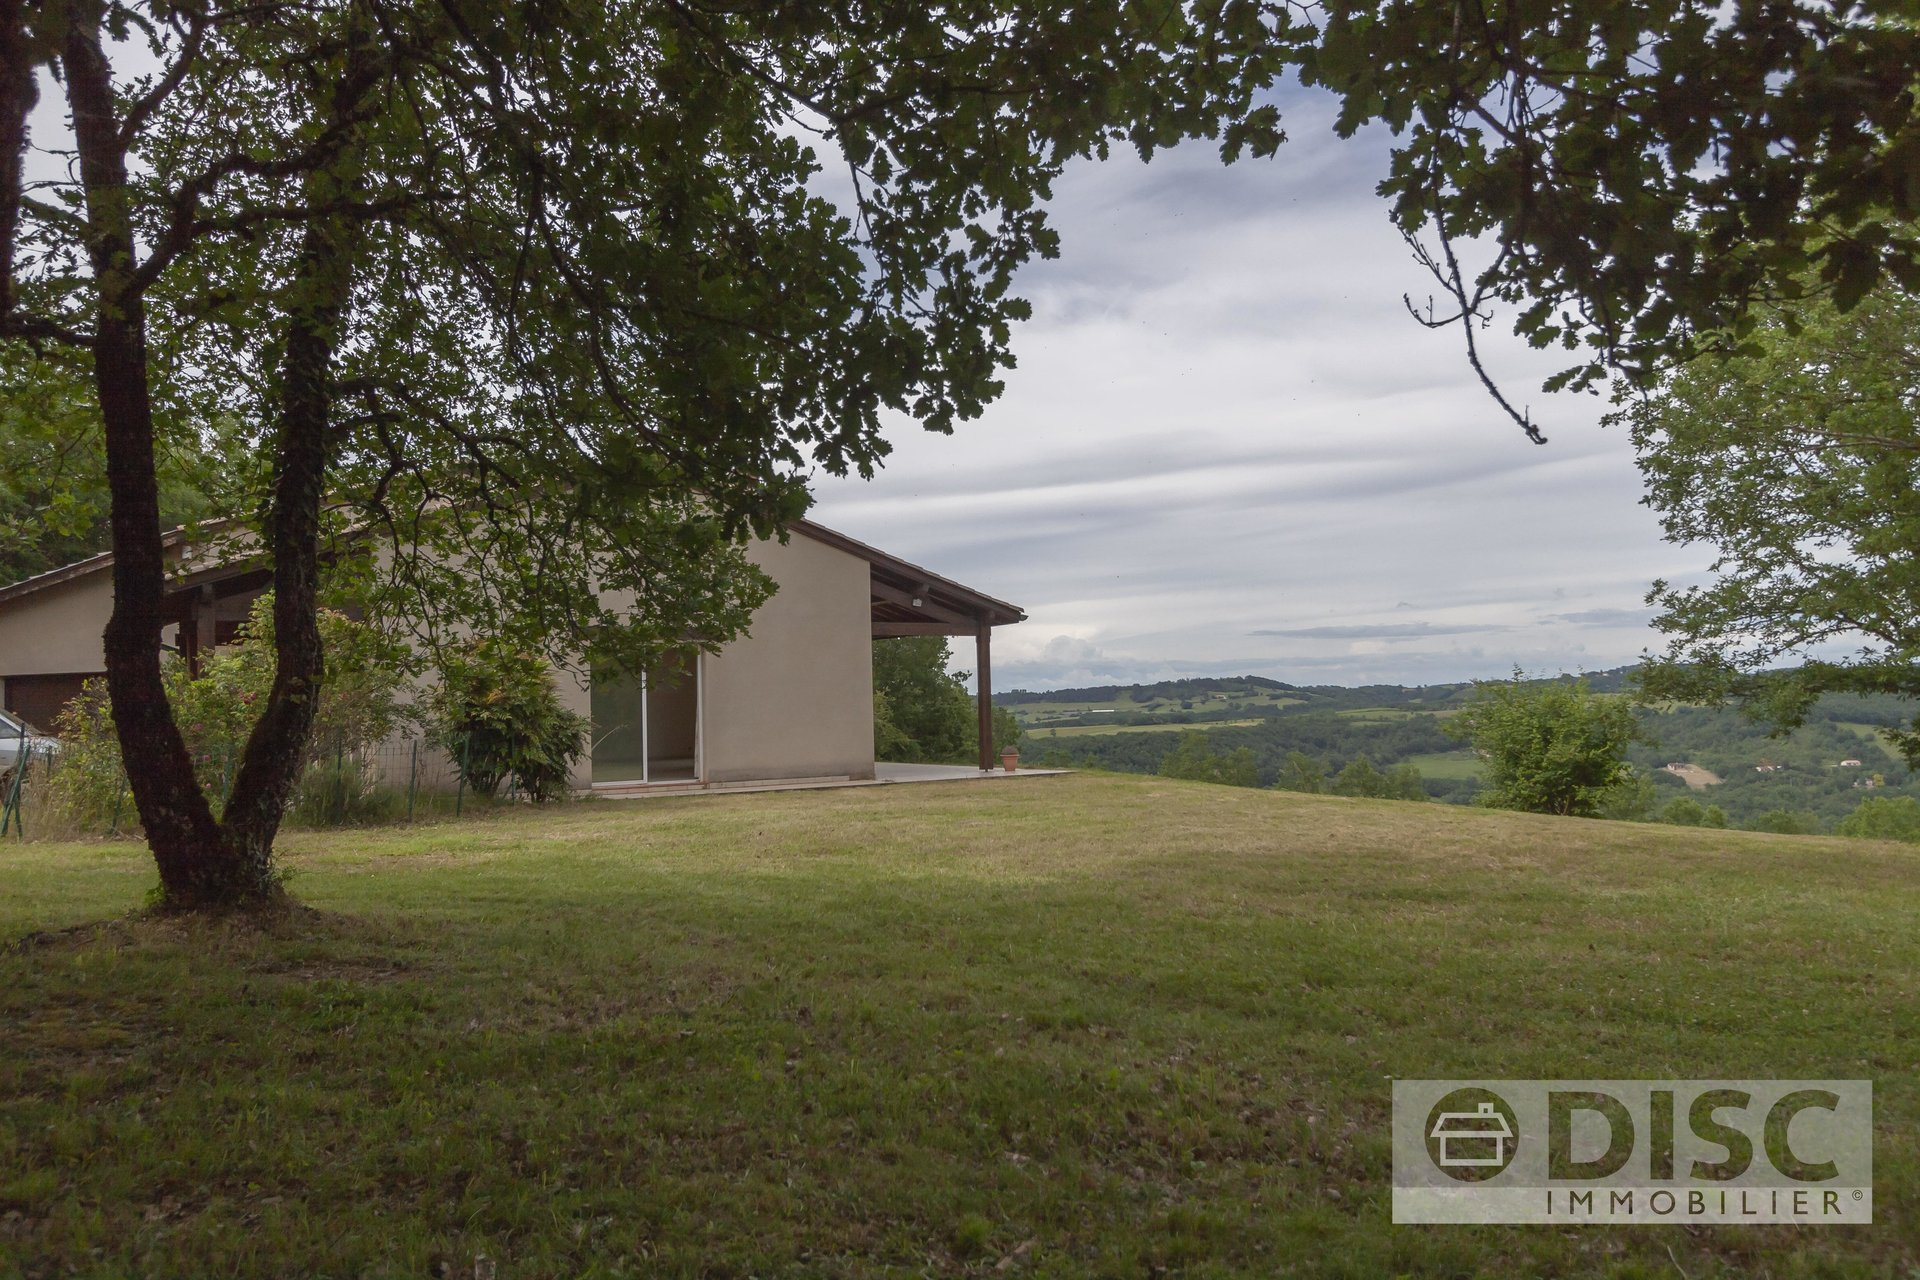 Magnificent and very comfortable villa on the outskirts of Saint Antonin Noble Val.